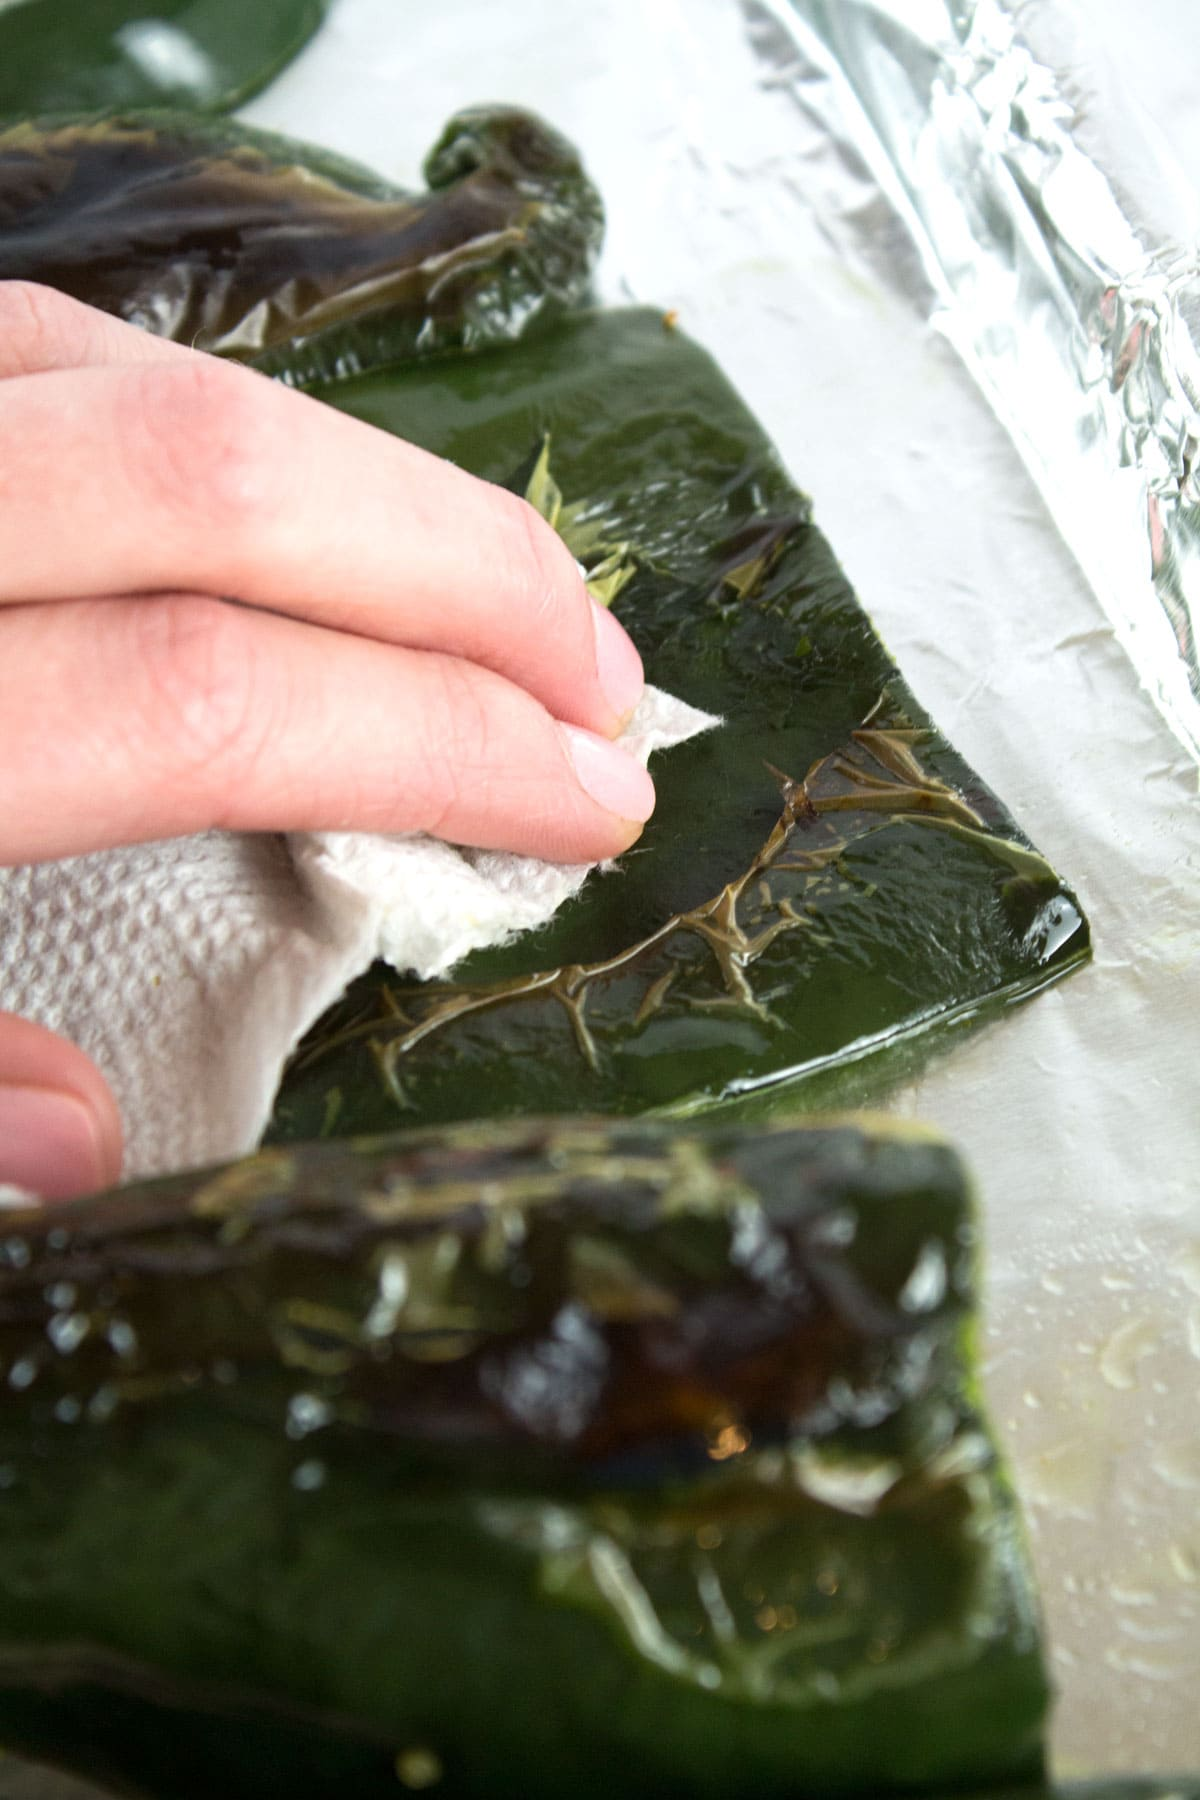 Hand removing charred portion of poblano skin with a paper towel.